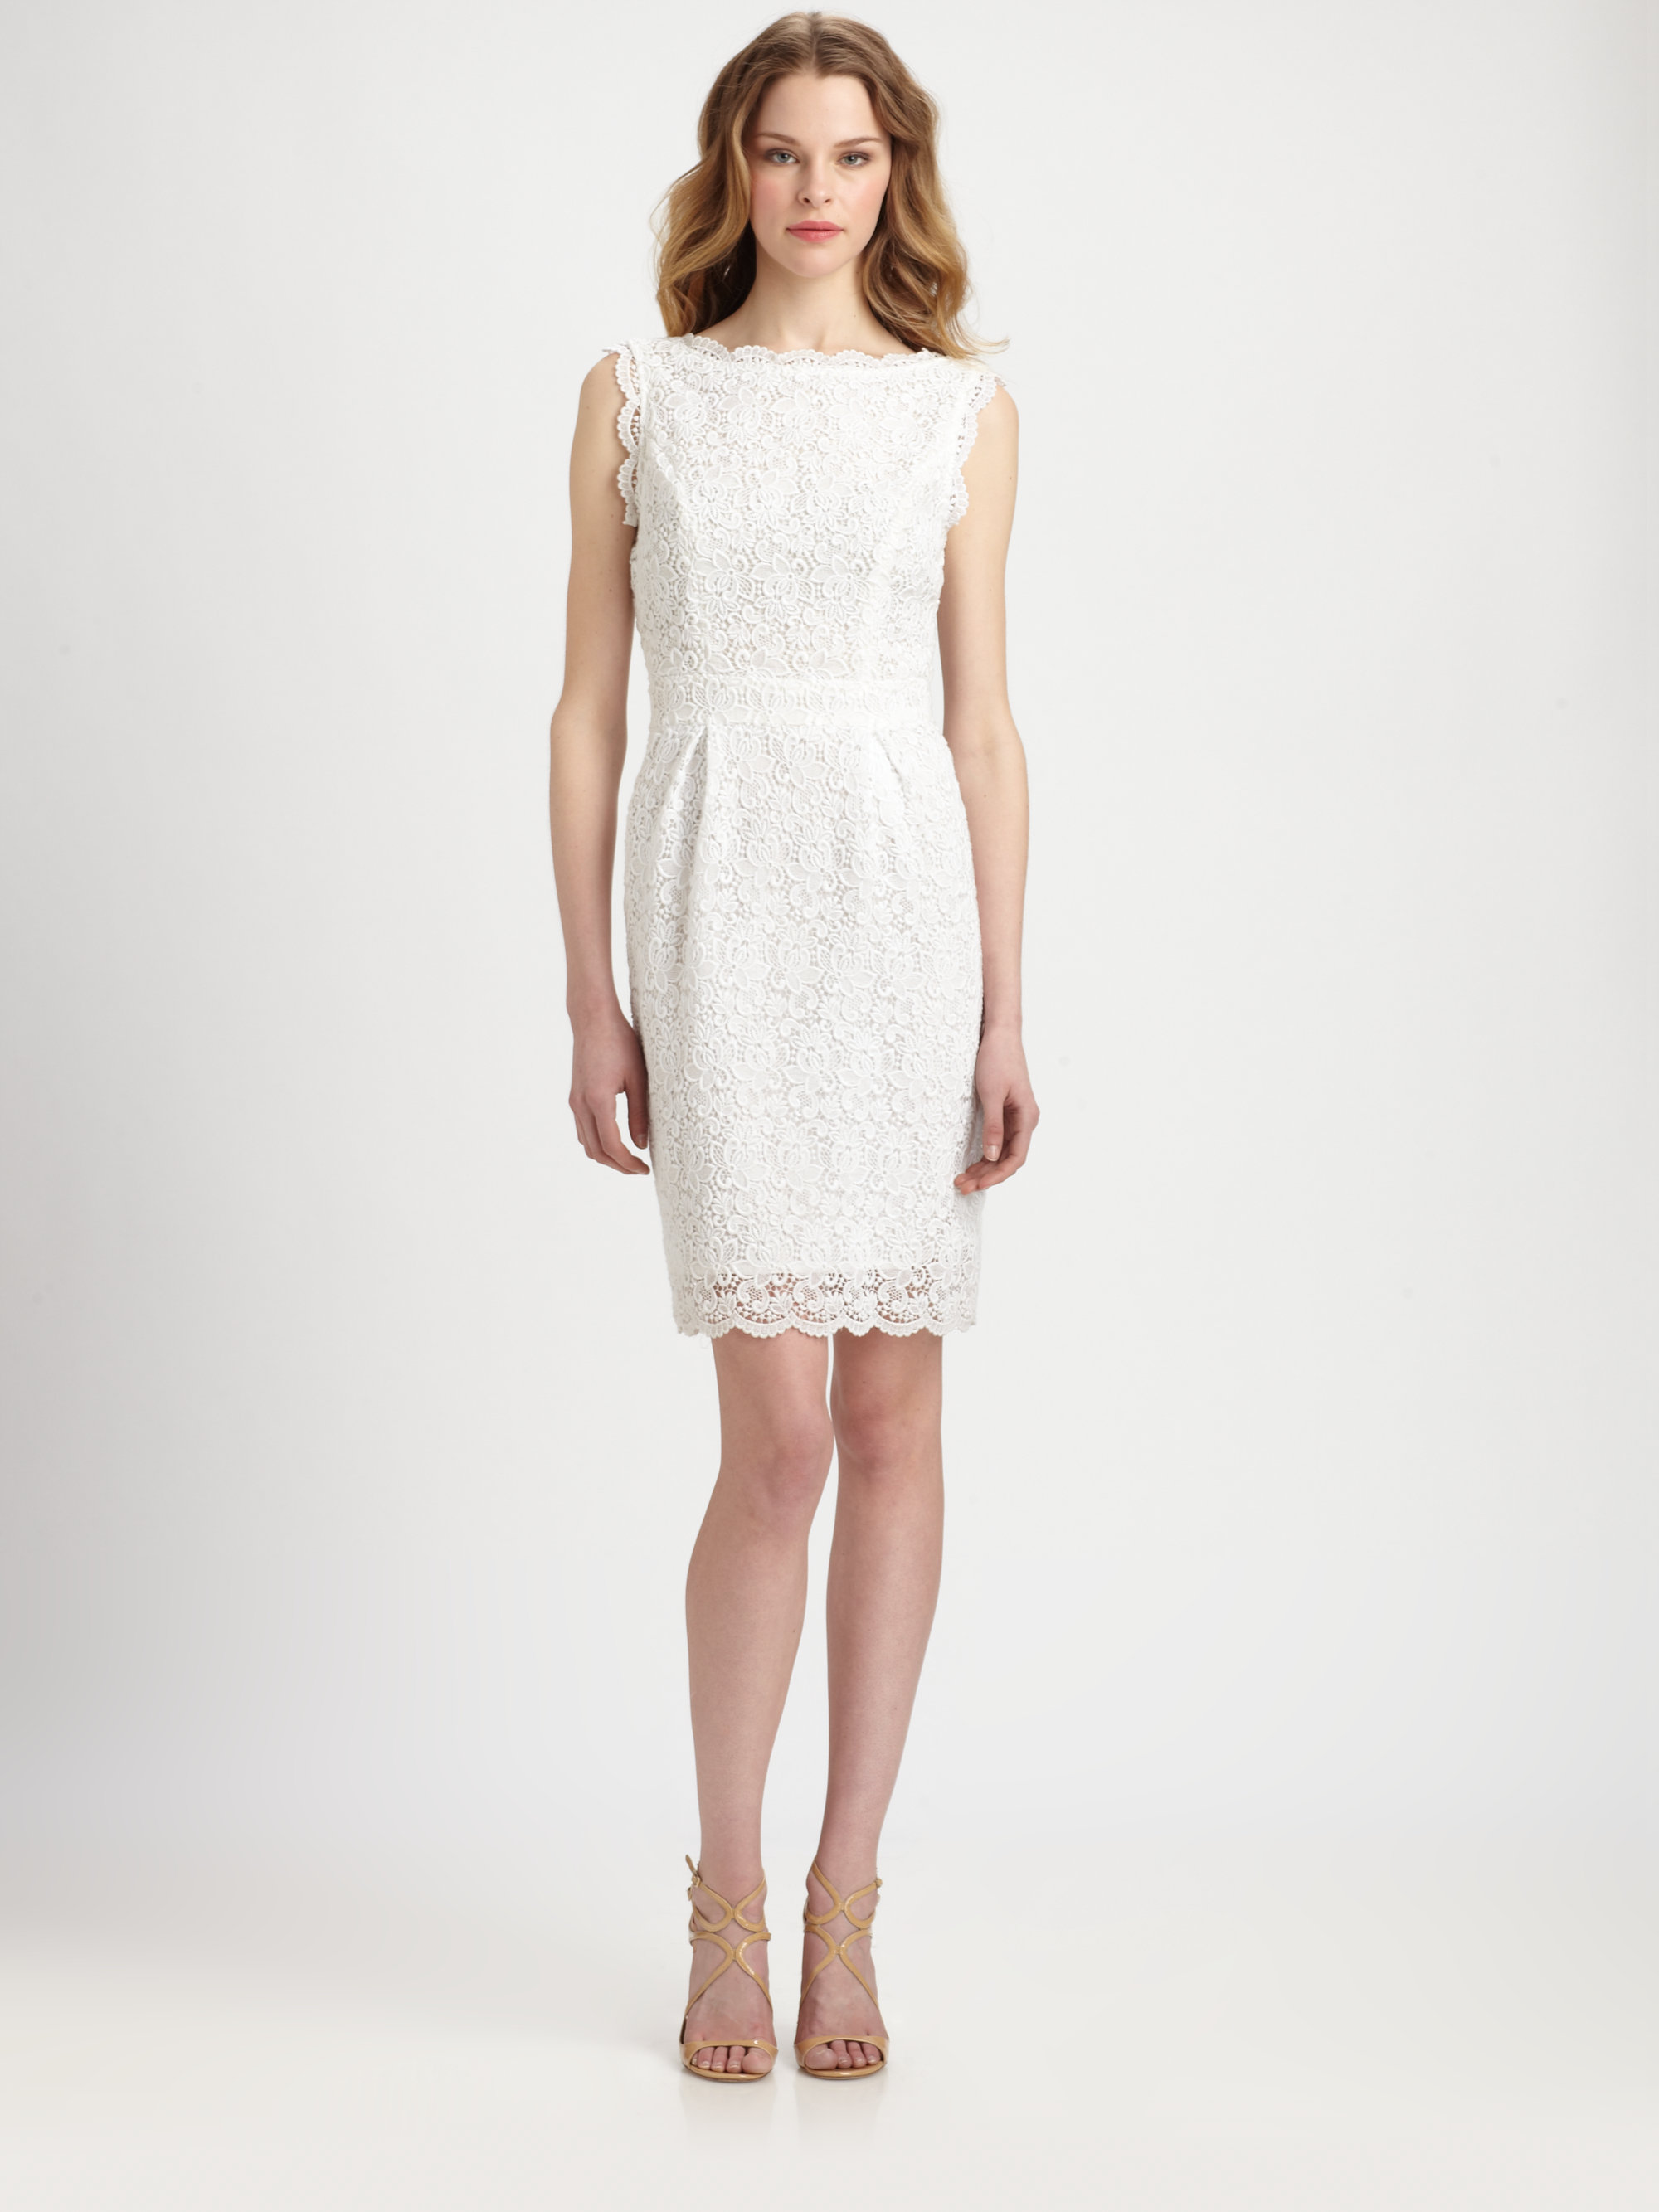 Shoshanna Nyla Cotton Lace Sheath Dress in White | Lyst